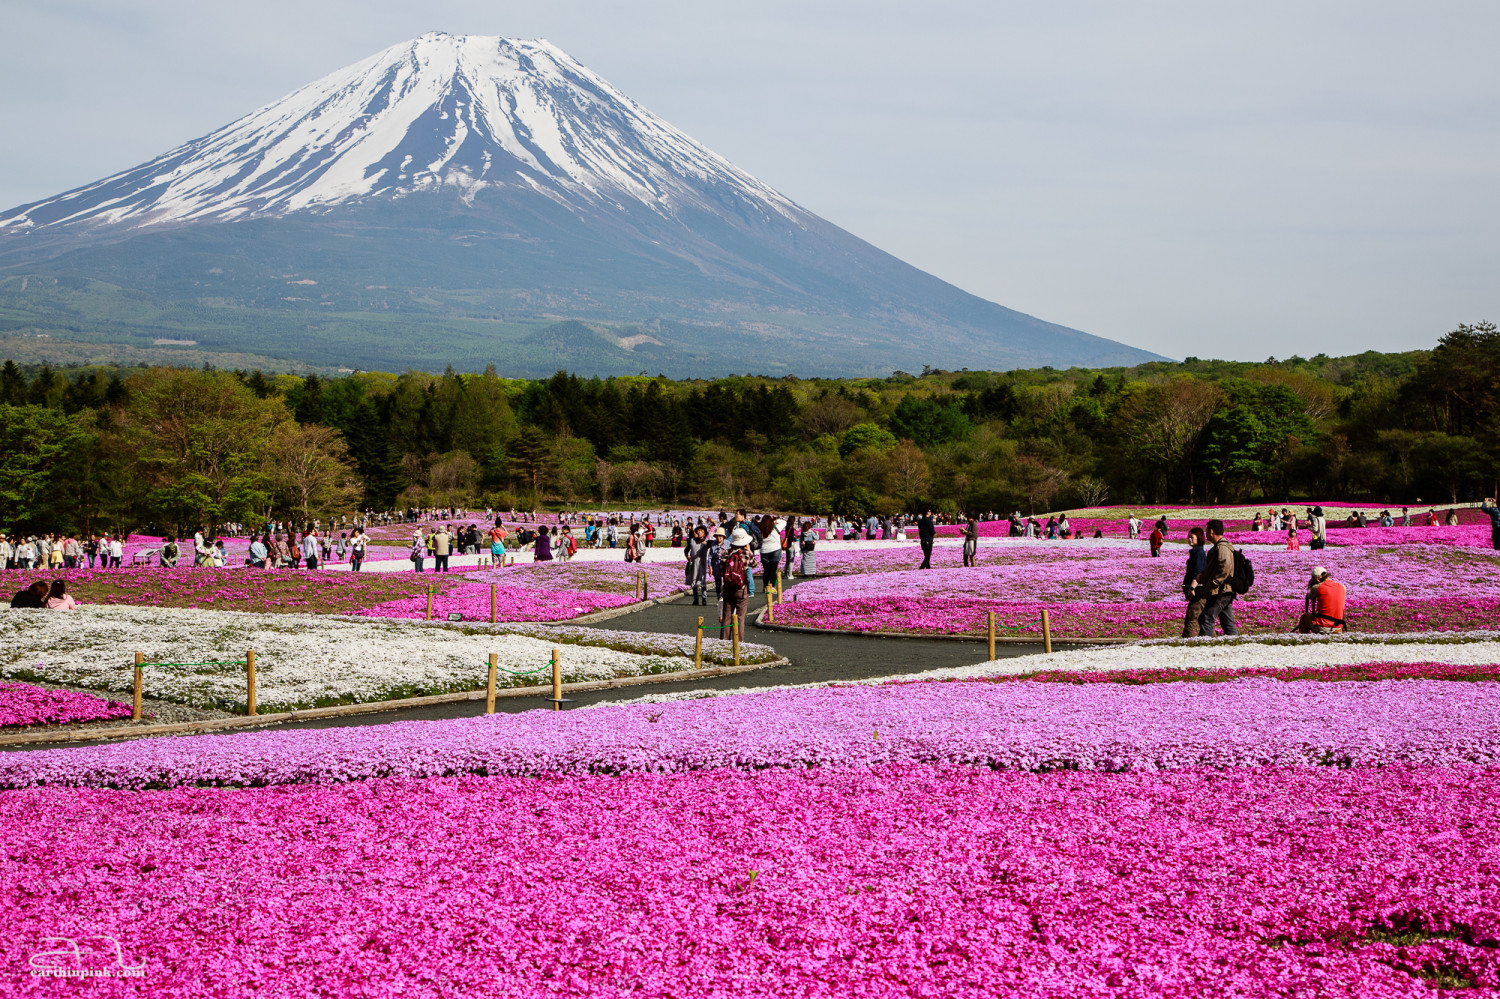 Few things are as representative of Japan as the iconic silhouette of Fuji-san rising above an endless carpet of pink ground moss flowers at the Fuji Shibazakura Festival.